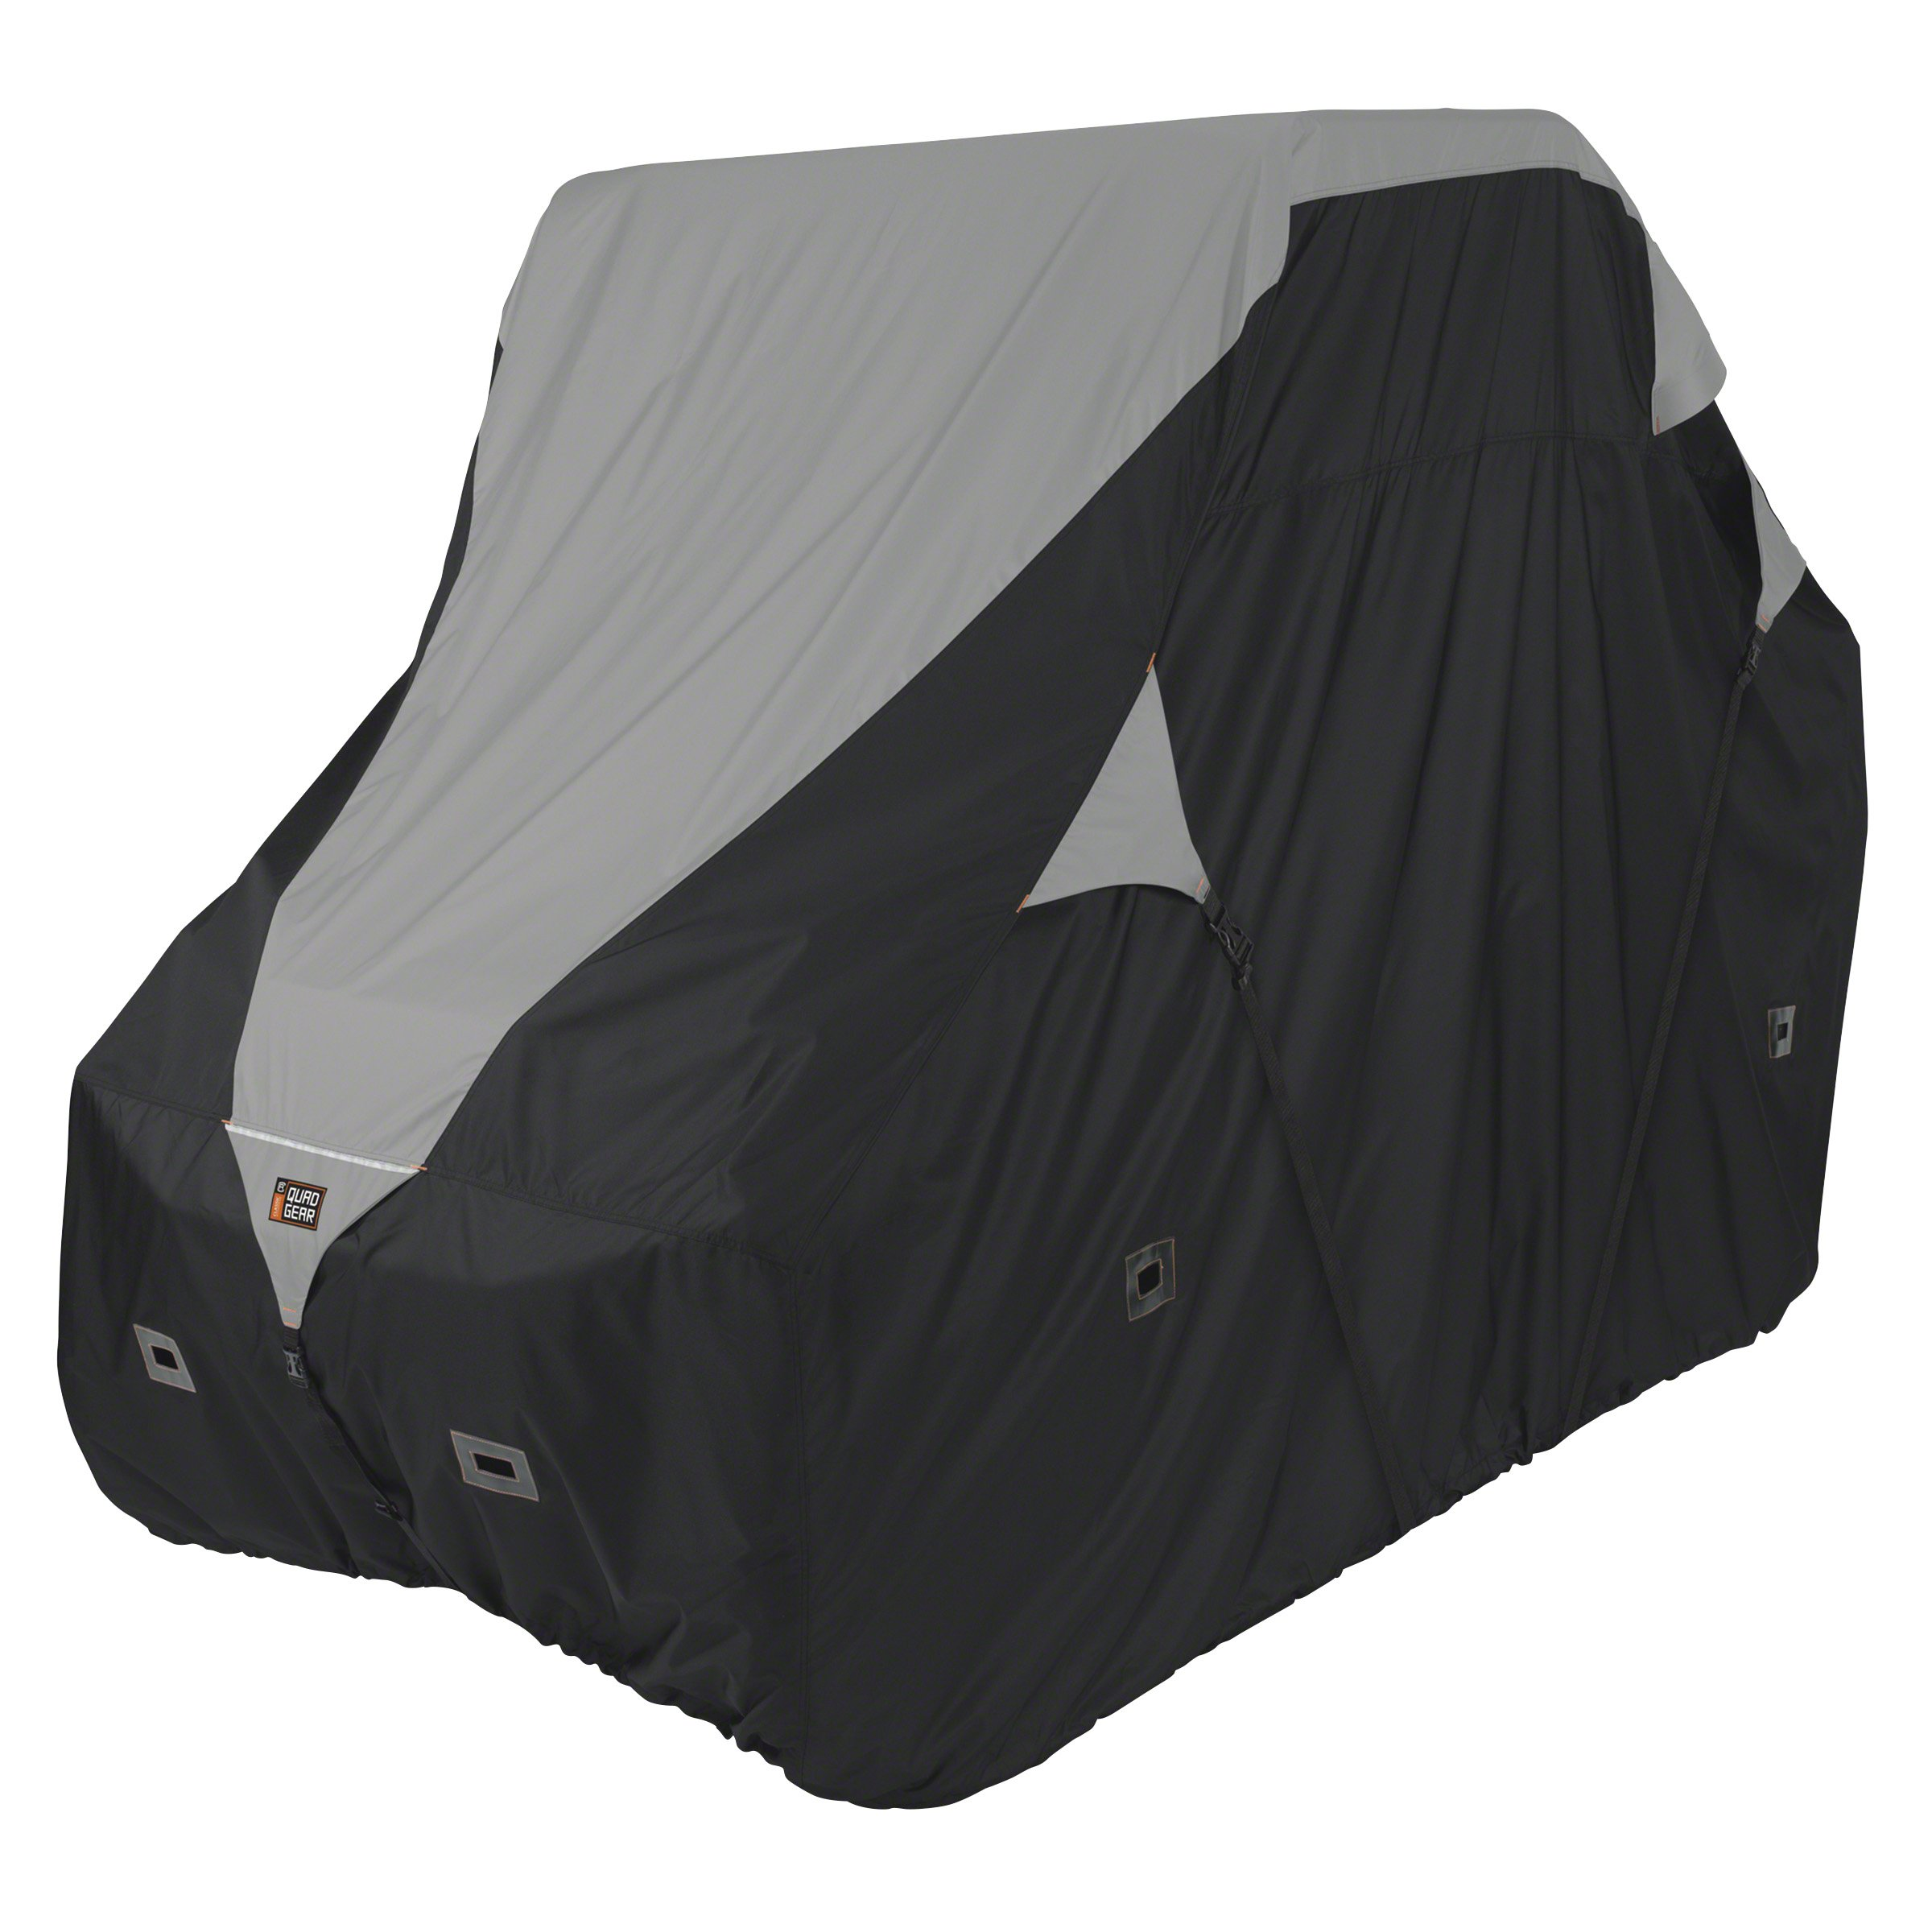 Classic Accessories 18-065-053801-00 Black/Grey QuadGear UTV Deluxe Storage Cover (for Larger 2-3 Passenger UTVs Up to 125'' L 64'' W 70'' H)